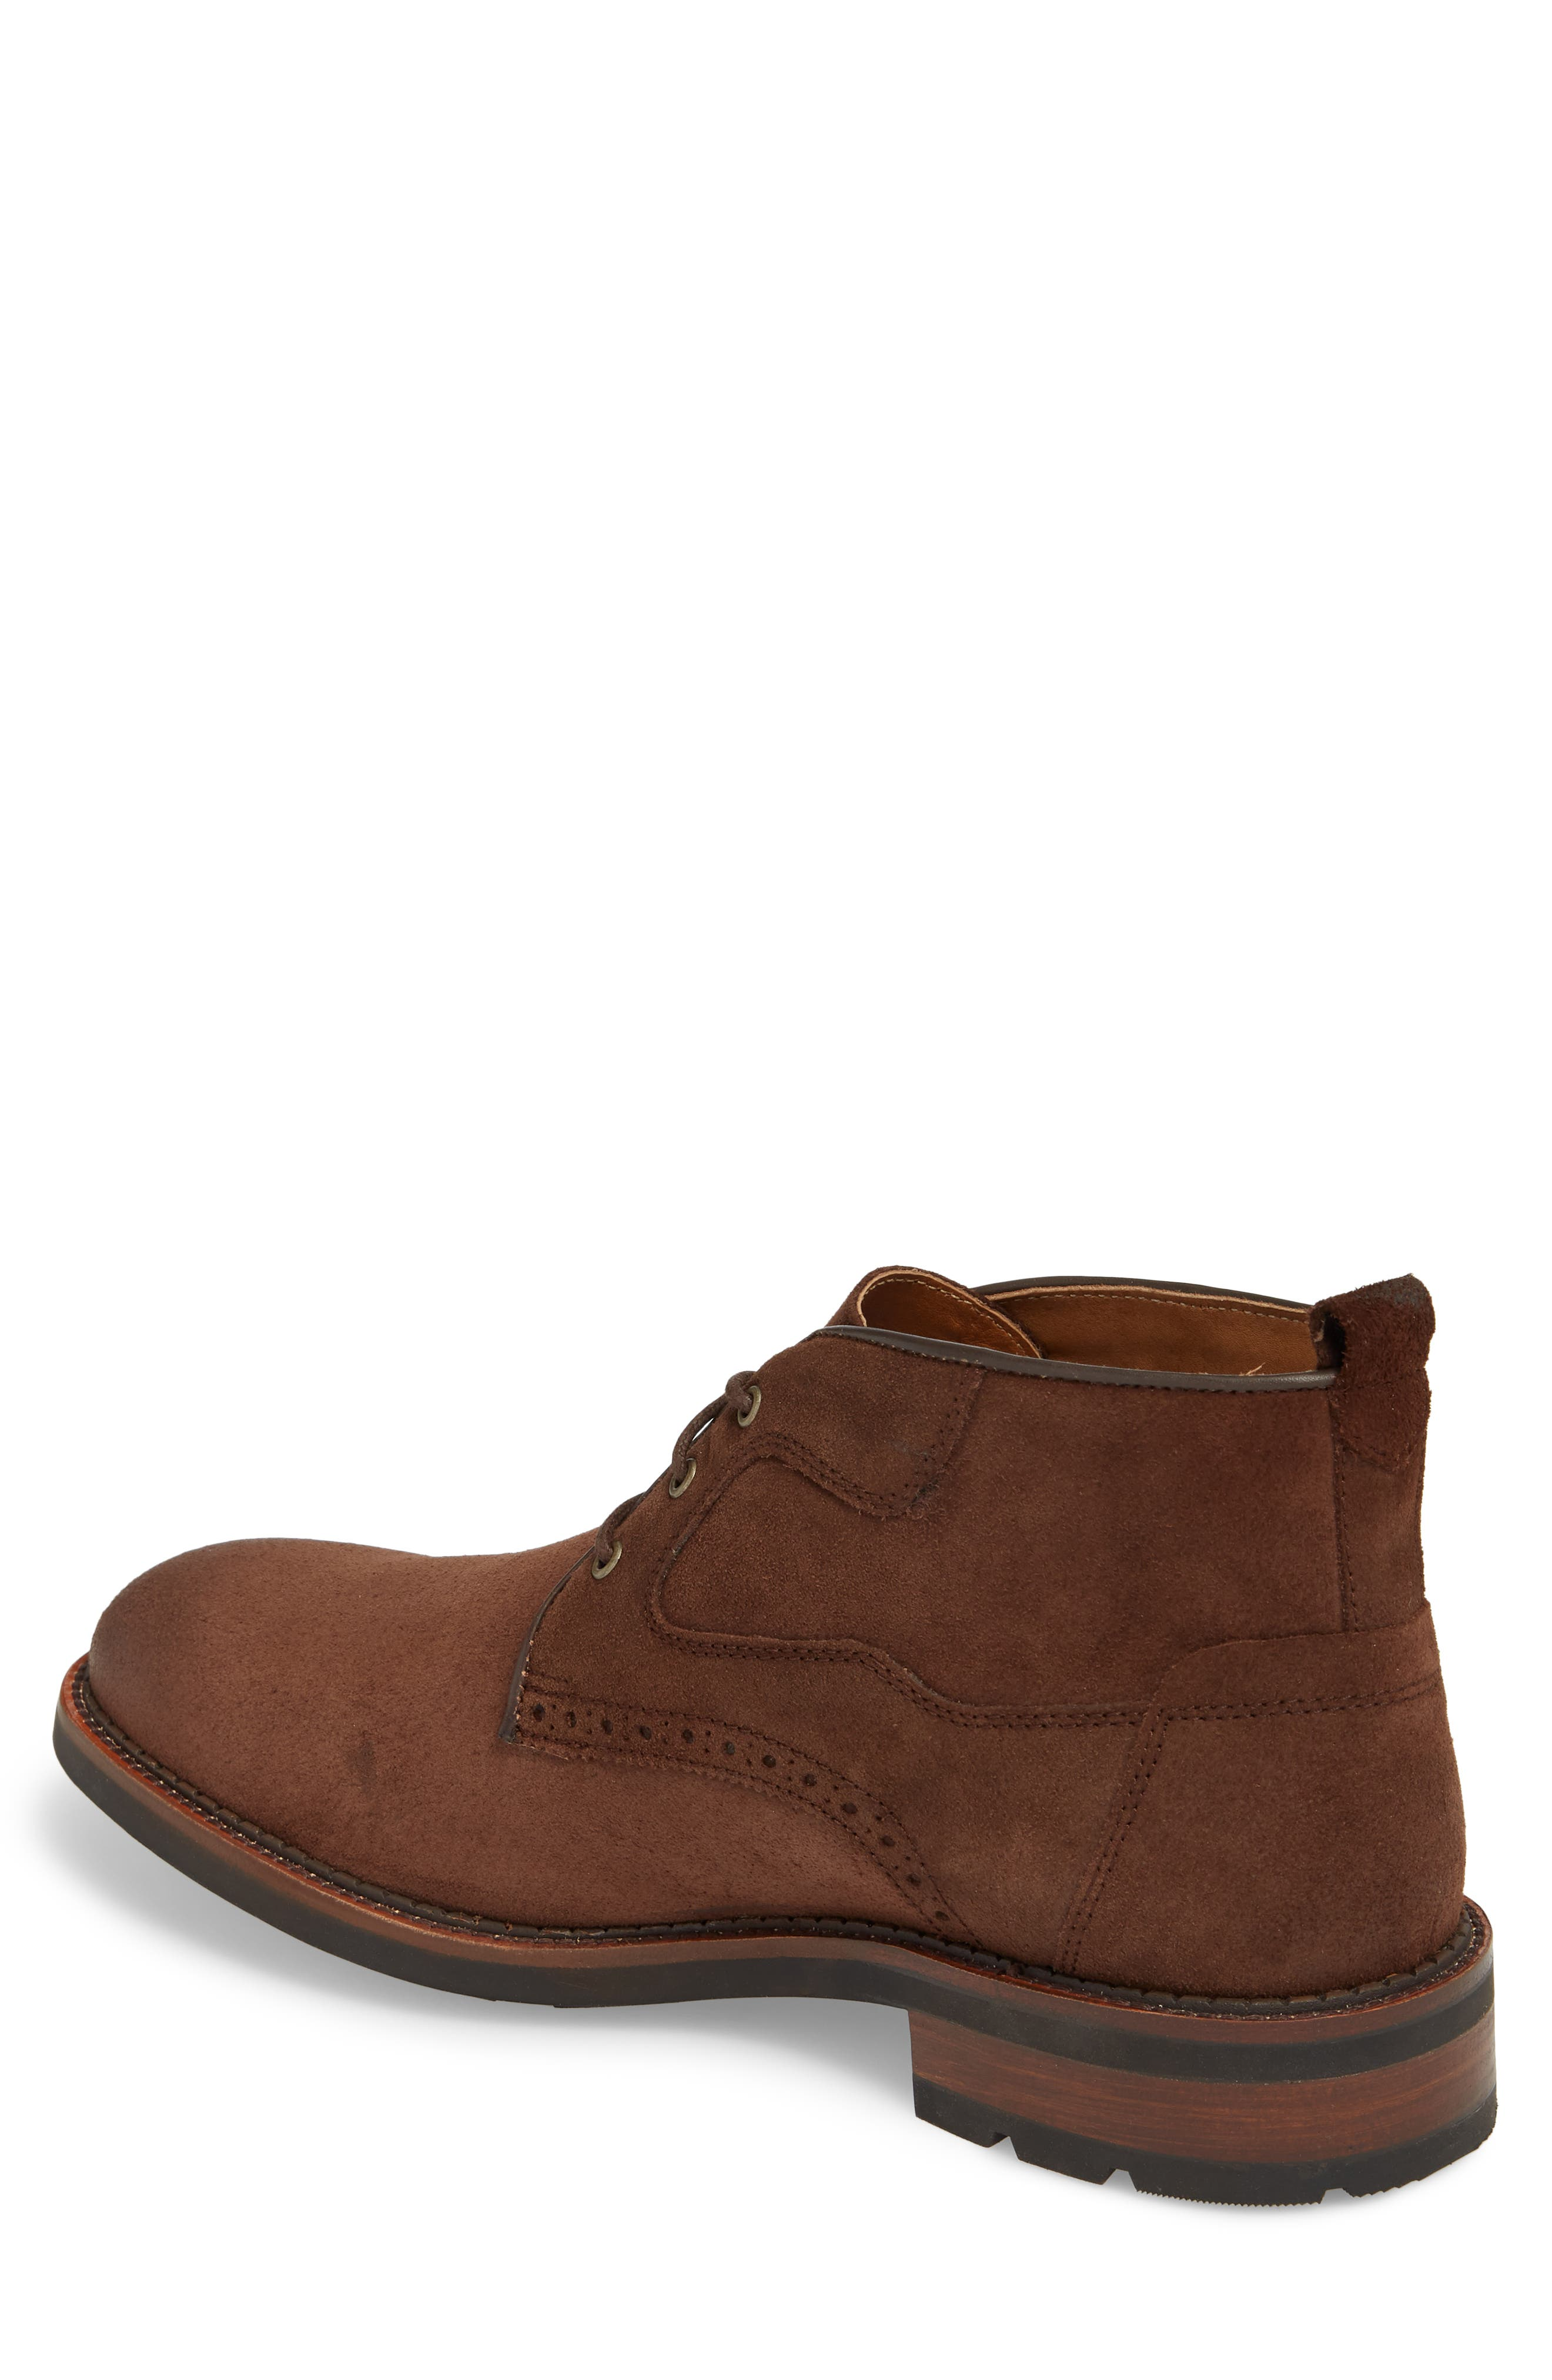 Fullerton Chukka Boot,                             Alternate thumbnail 2, color,                             Dark Brown